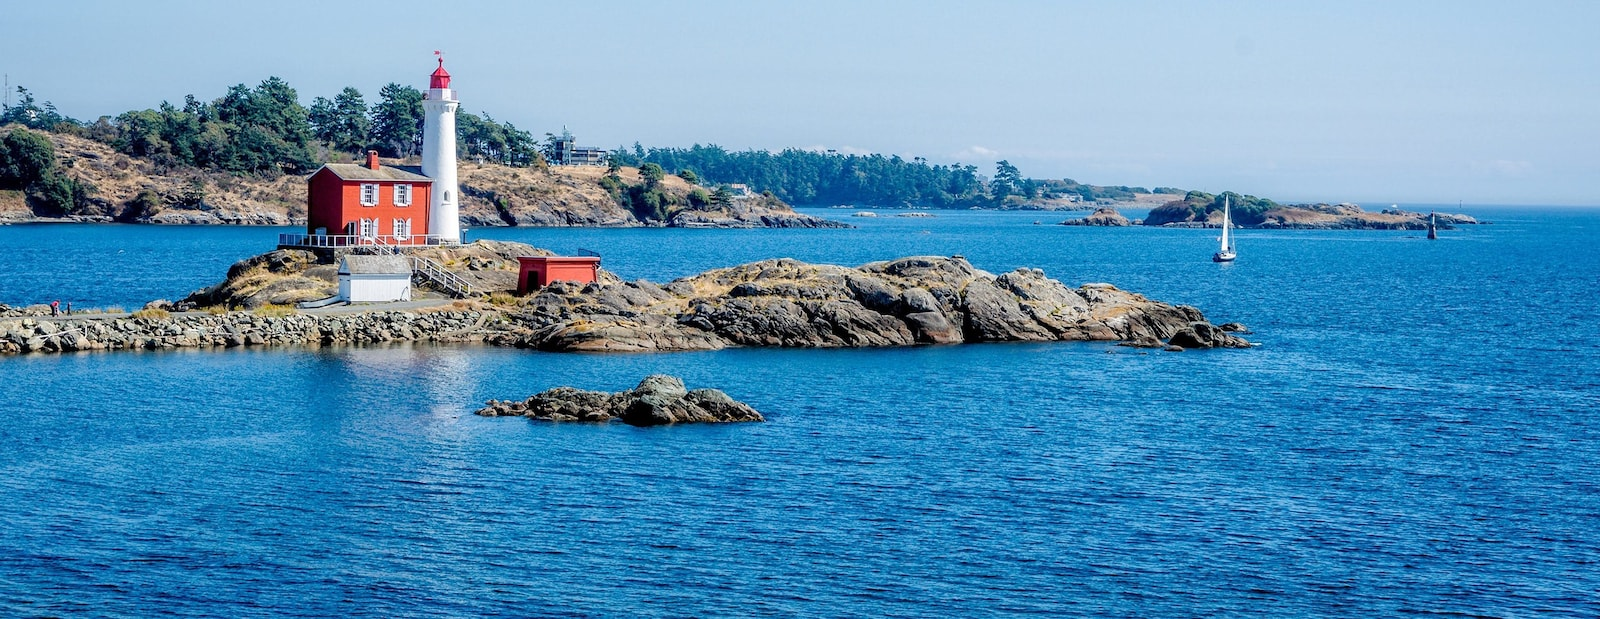 Vacation rentals in Sooke River